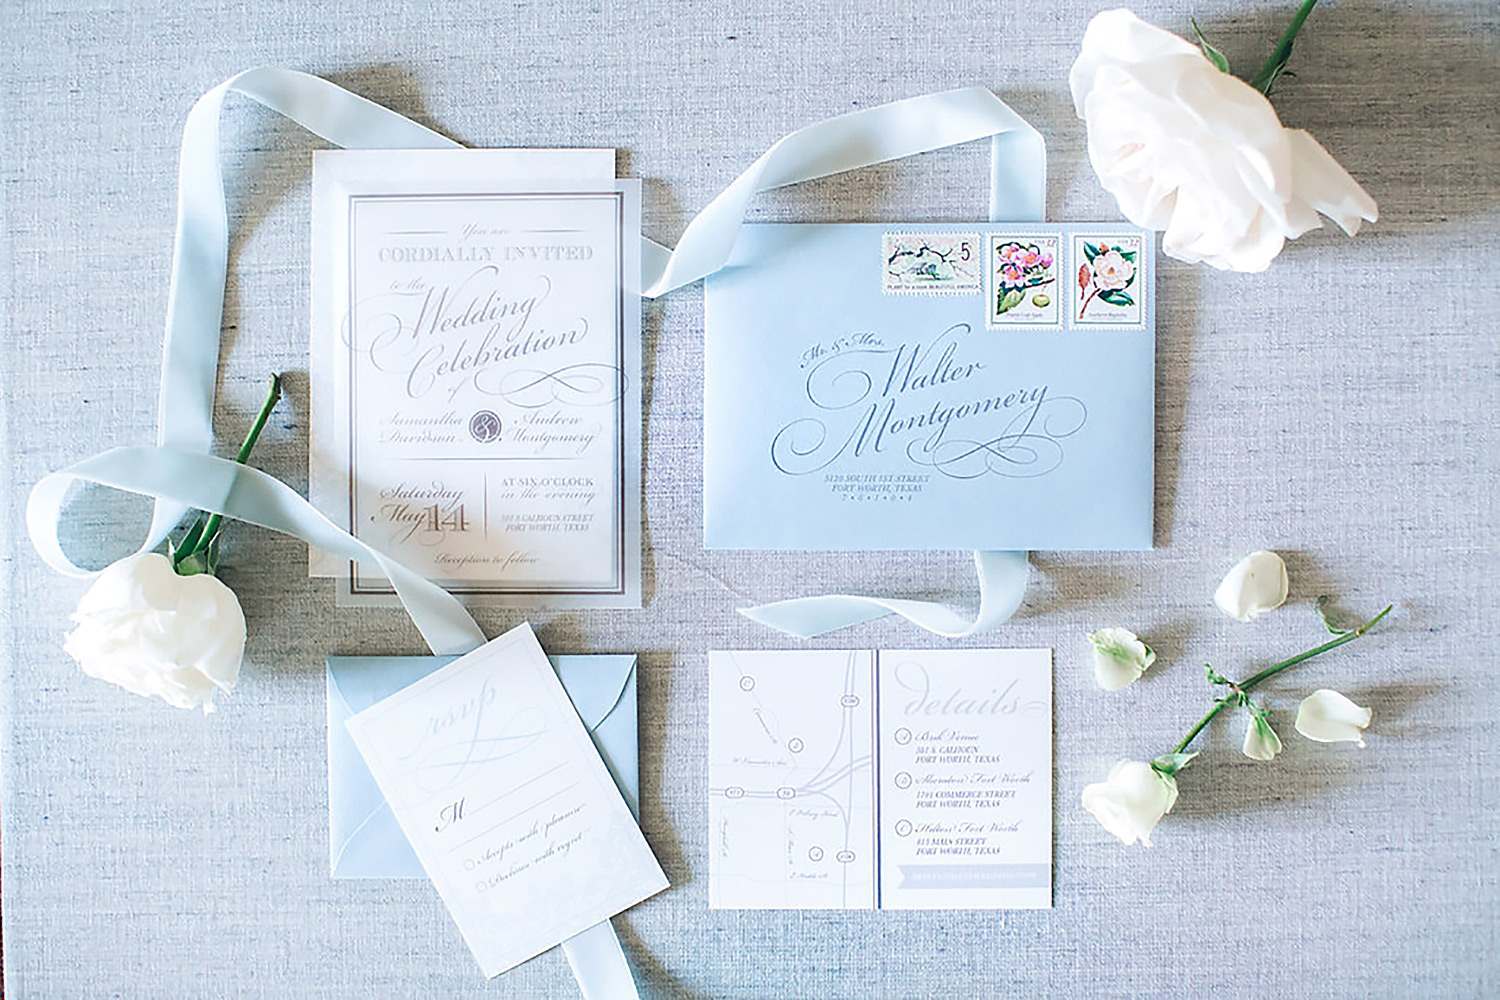 Dusty blue and acrylic wedding invitation with white flowers